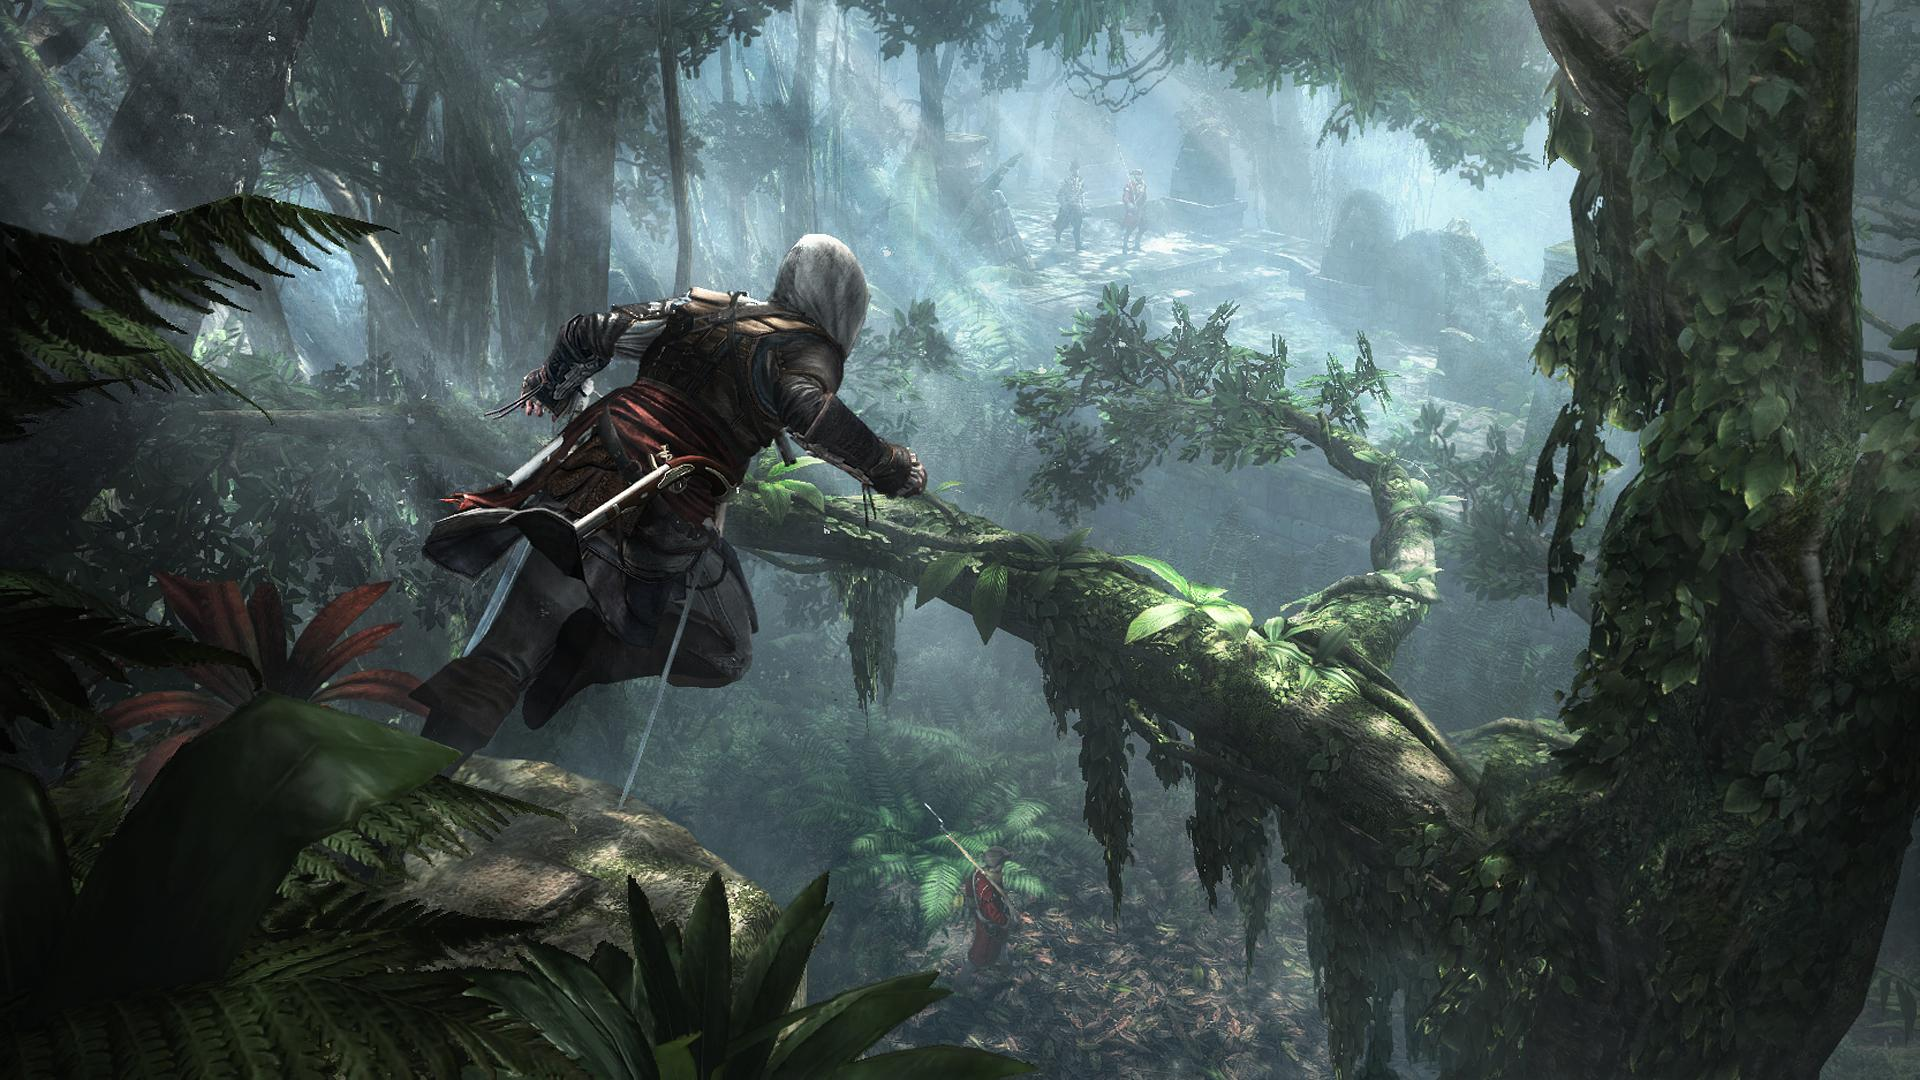 Assassin S Creed Iv Black Flag On Ps3 And Ps4 To Have Additional